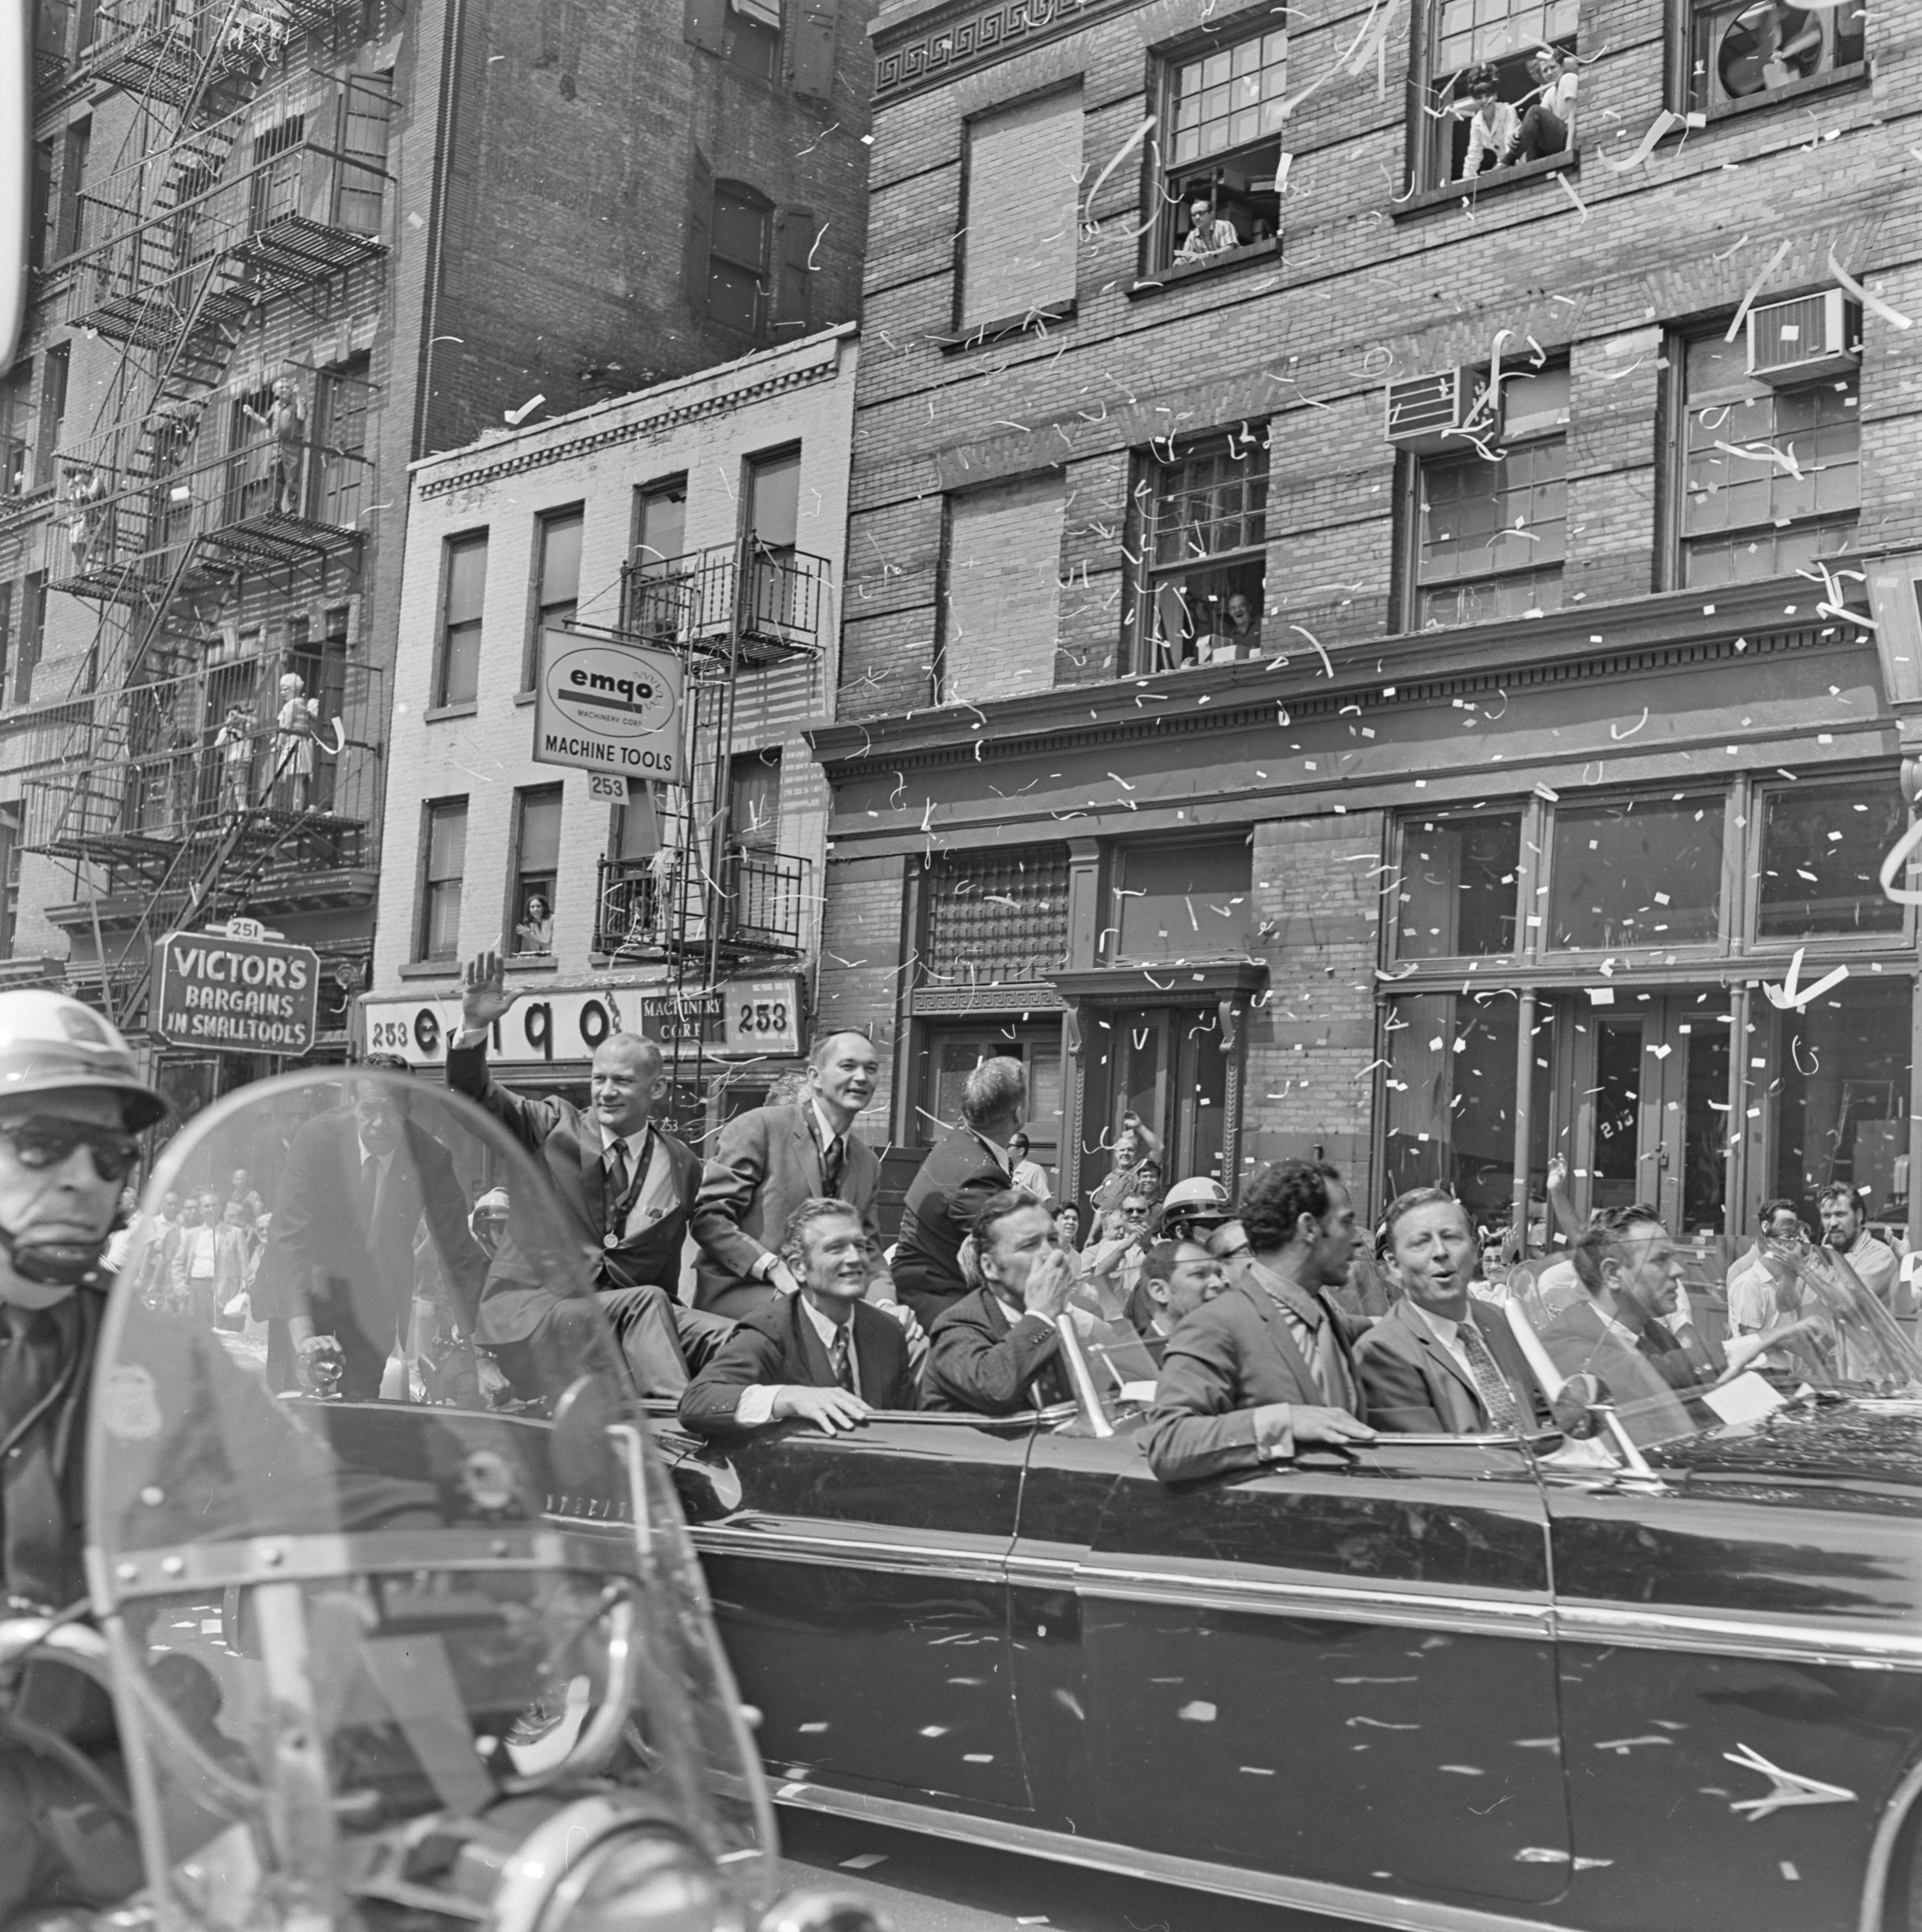 Following the City Hall reception, the Apollo 11 Astronaut motorcade continued uptown along Centre Street on their way to the United Nations, August 13, 1969. NYPD Collection, NYC Municipal Archives.